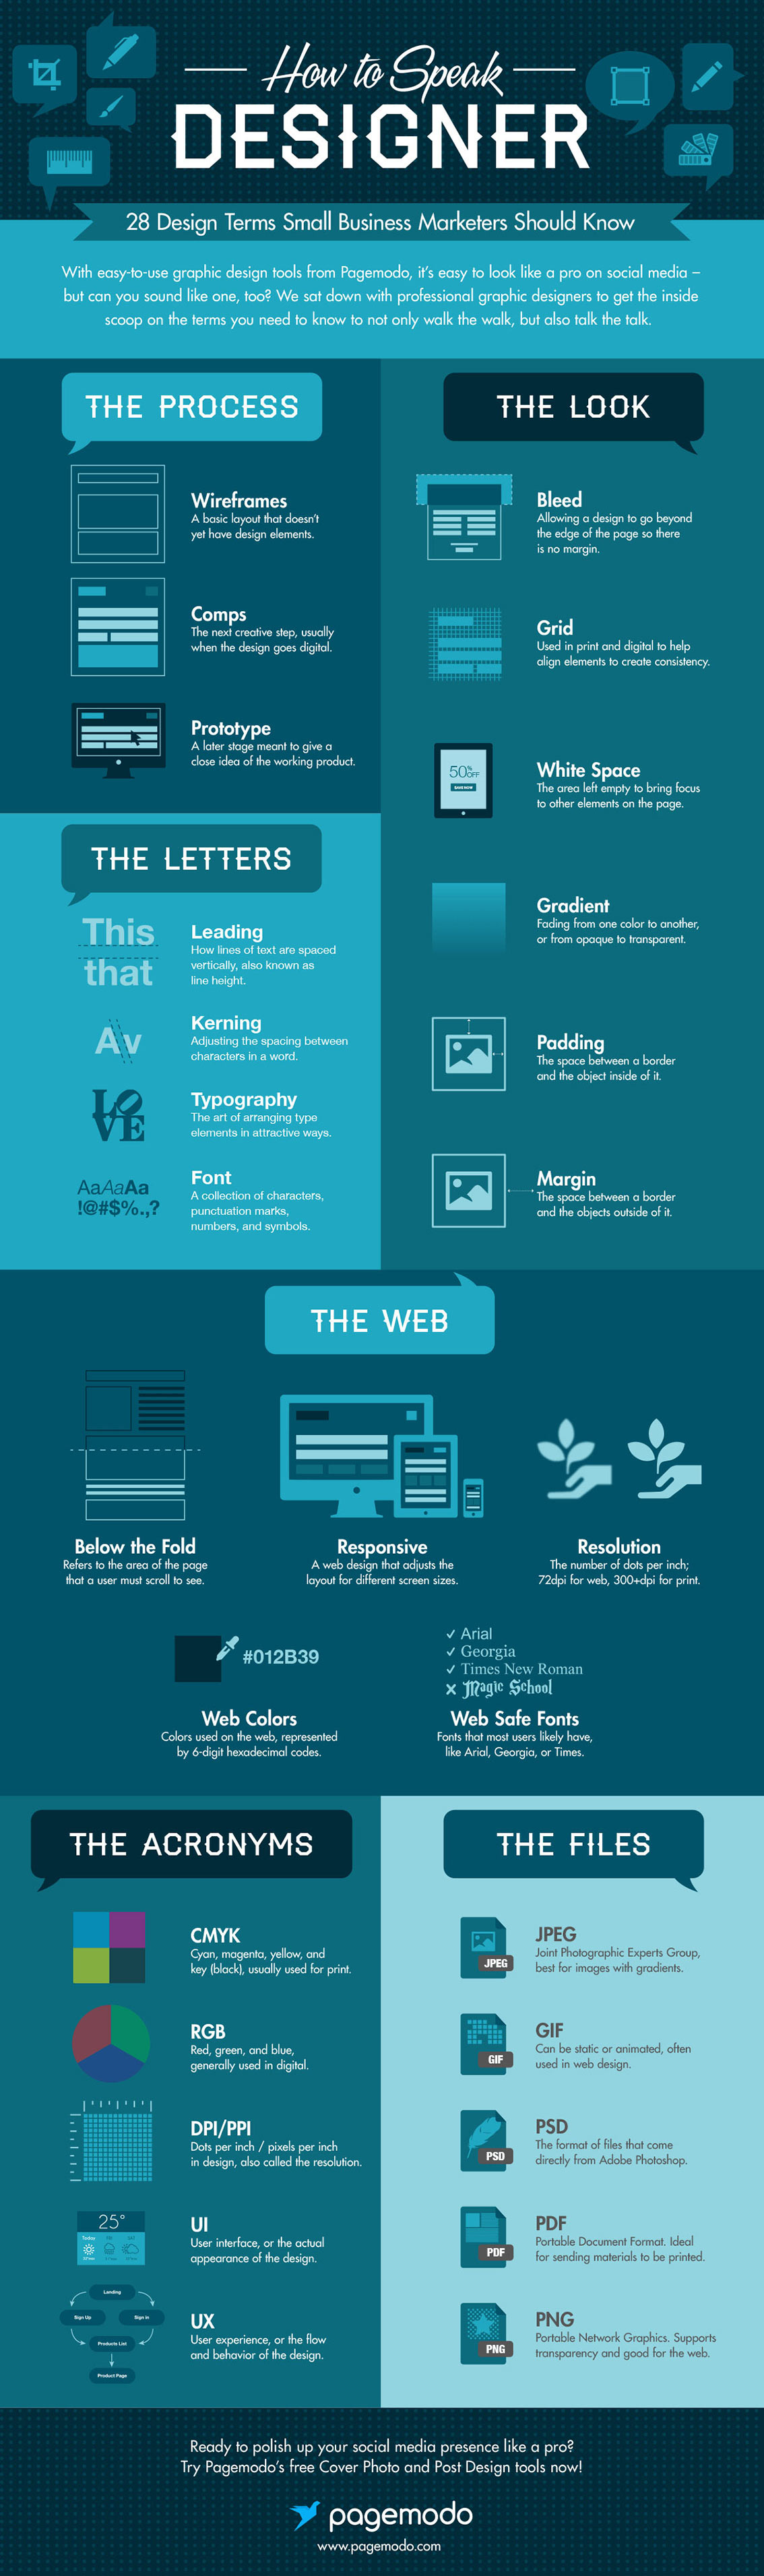 Basic Graphic Design Terminology for Marketers Infographic